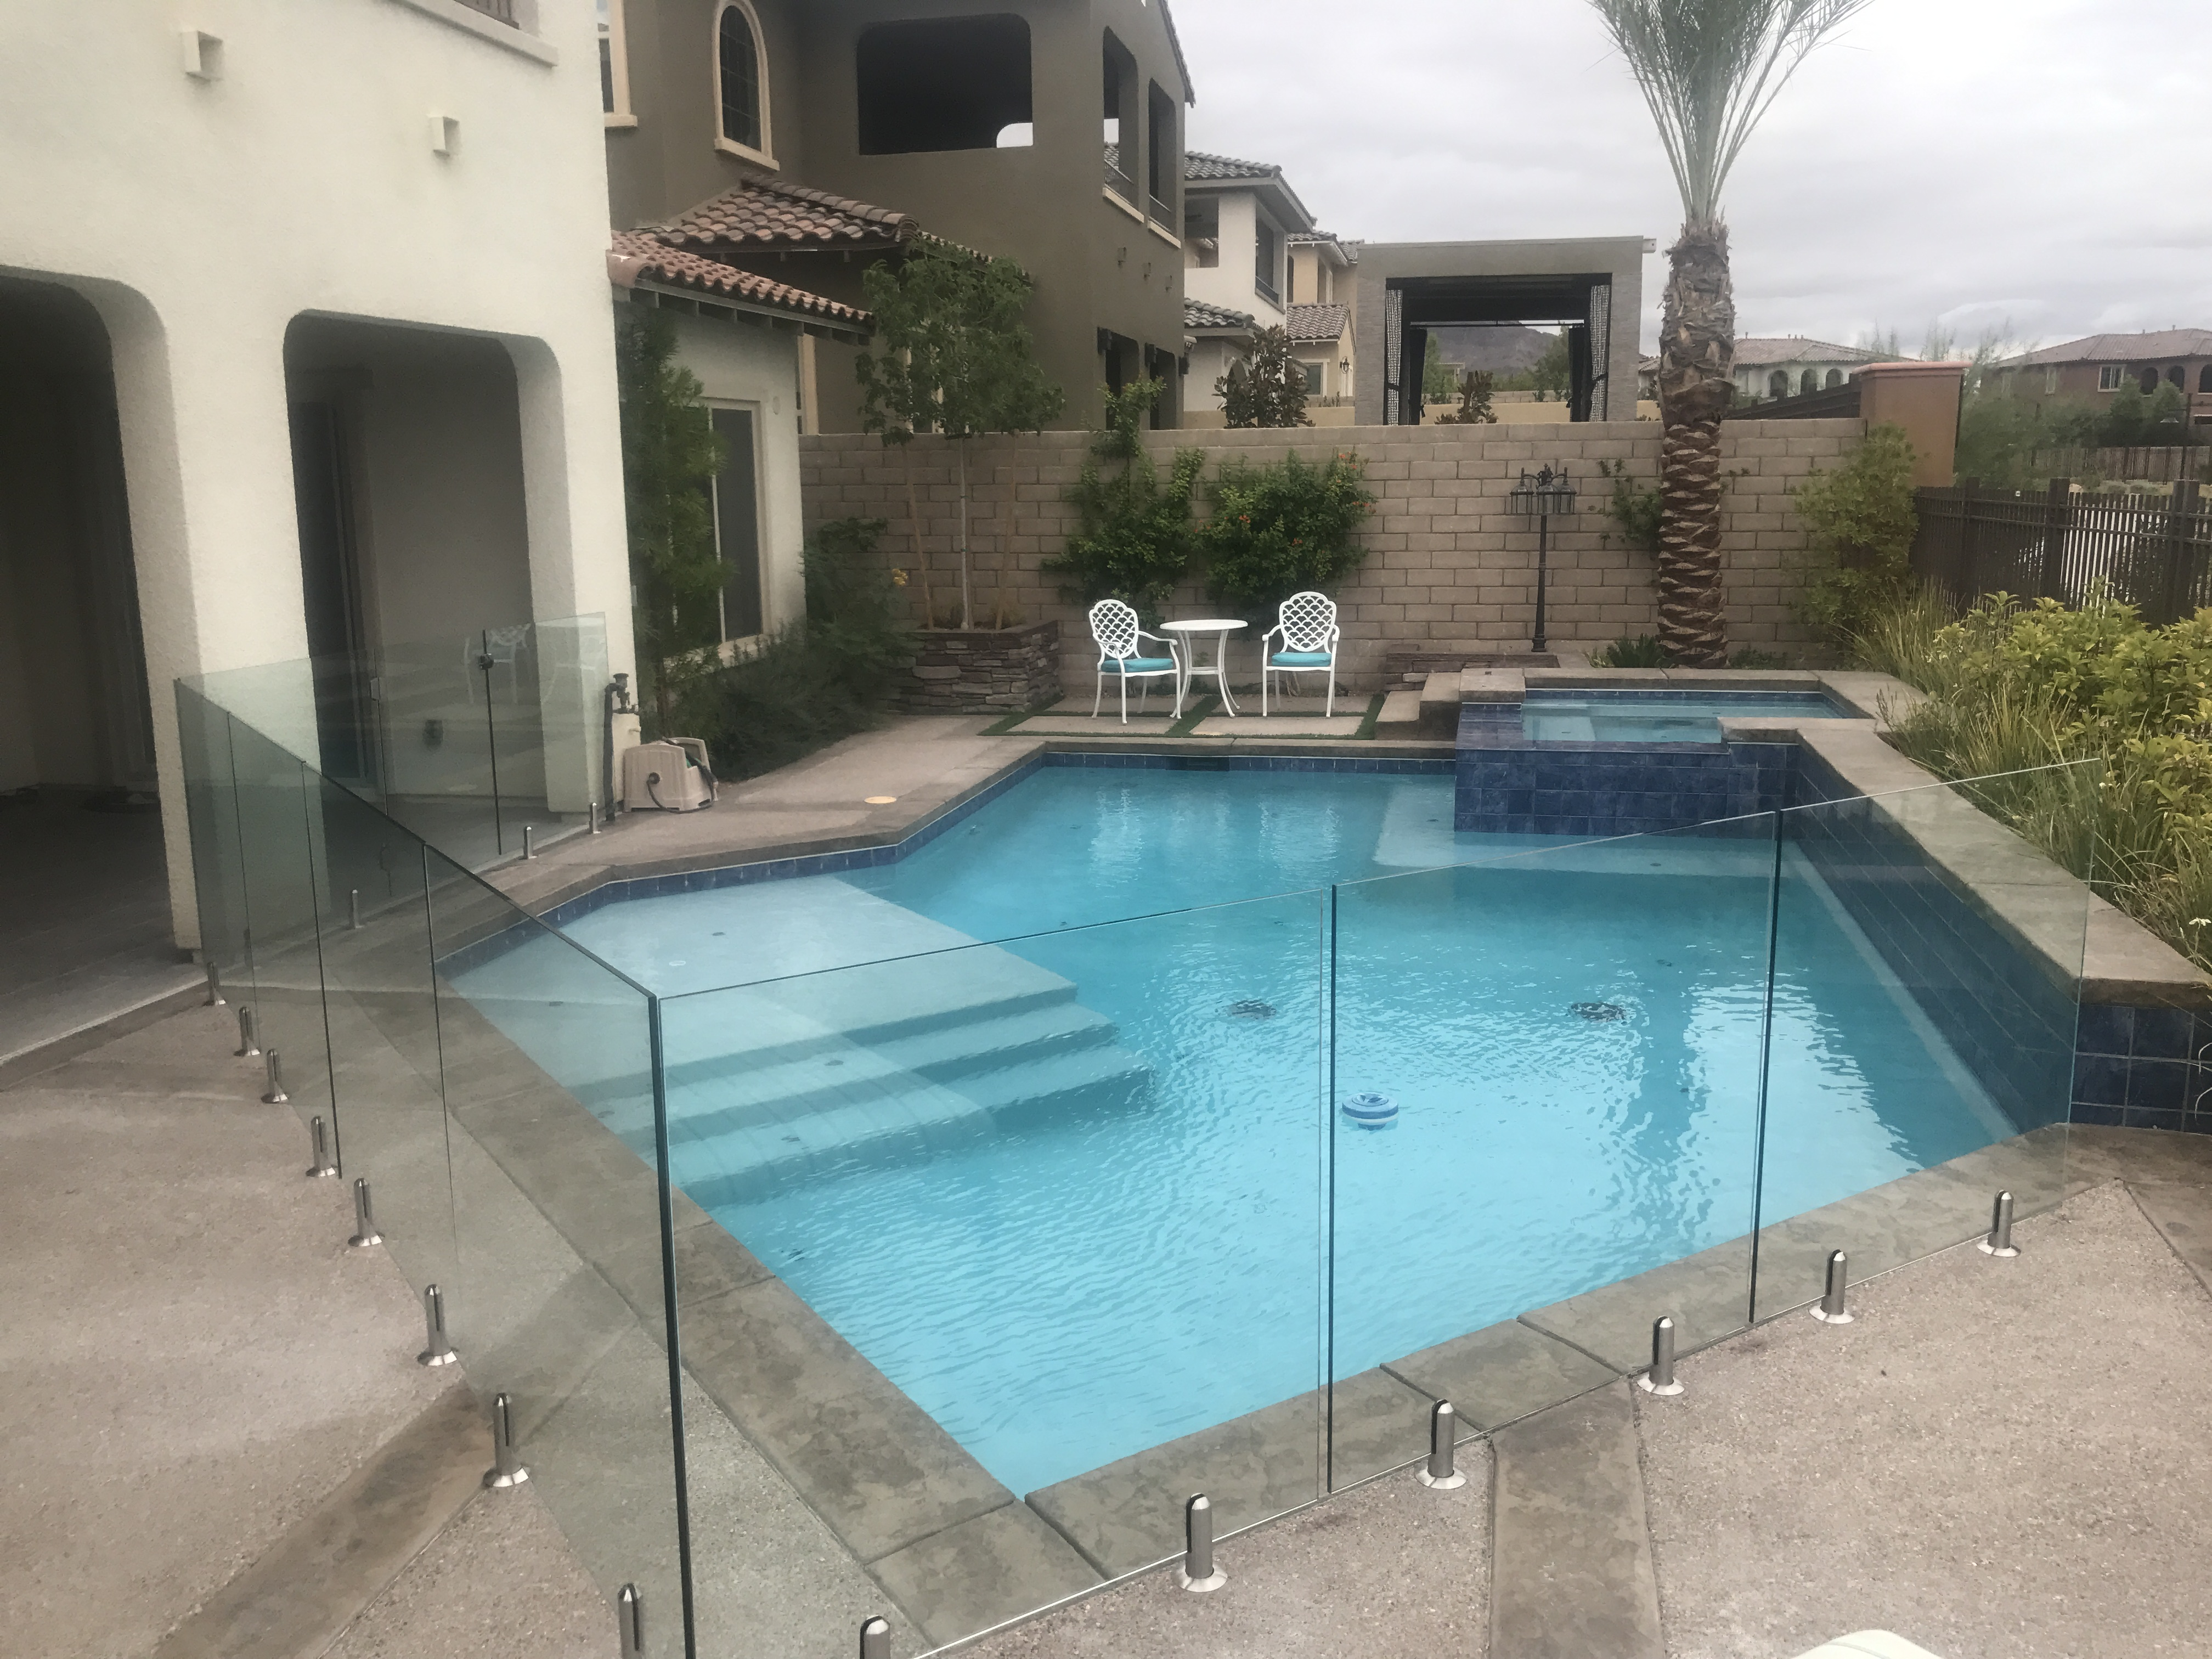 Glass Pool Safety Fences Installed By Safe Defenses